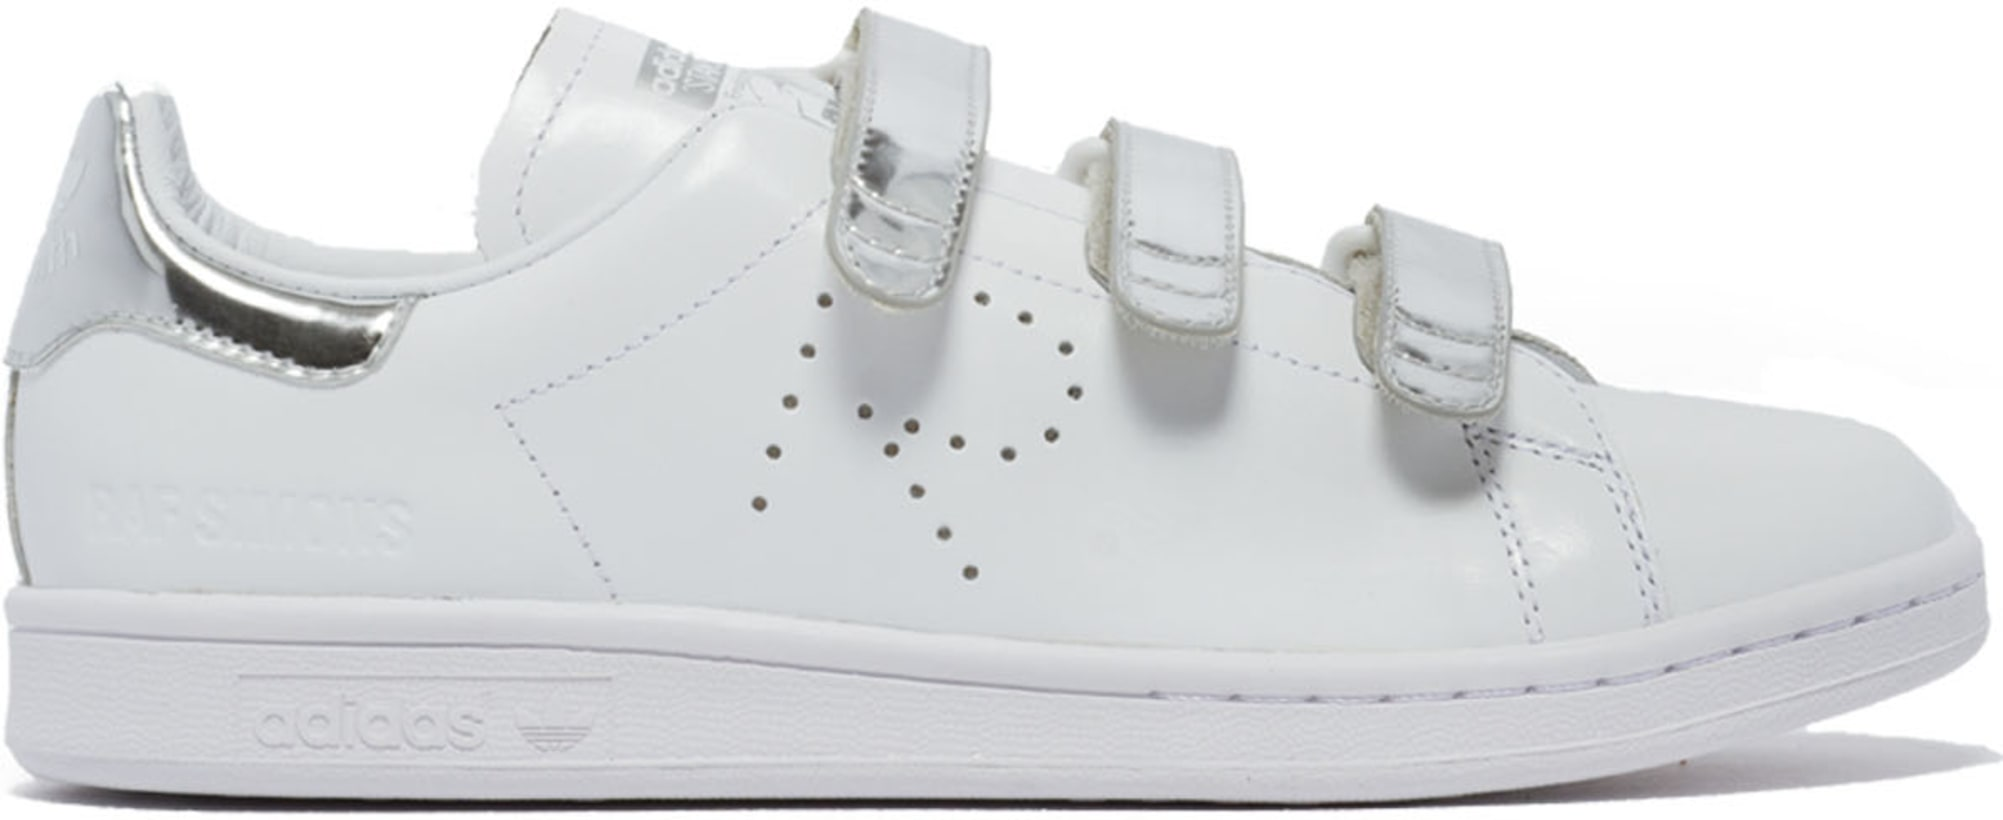 new style 806bb 749fa adidas by Raf Simons. Raf Simons Stan Smith Comfort Sneakers - White Silver